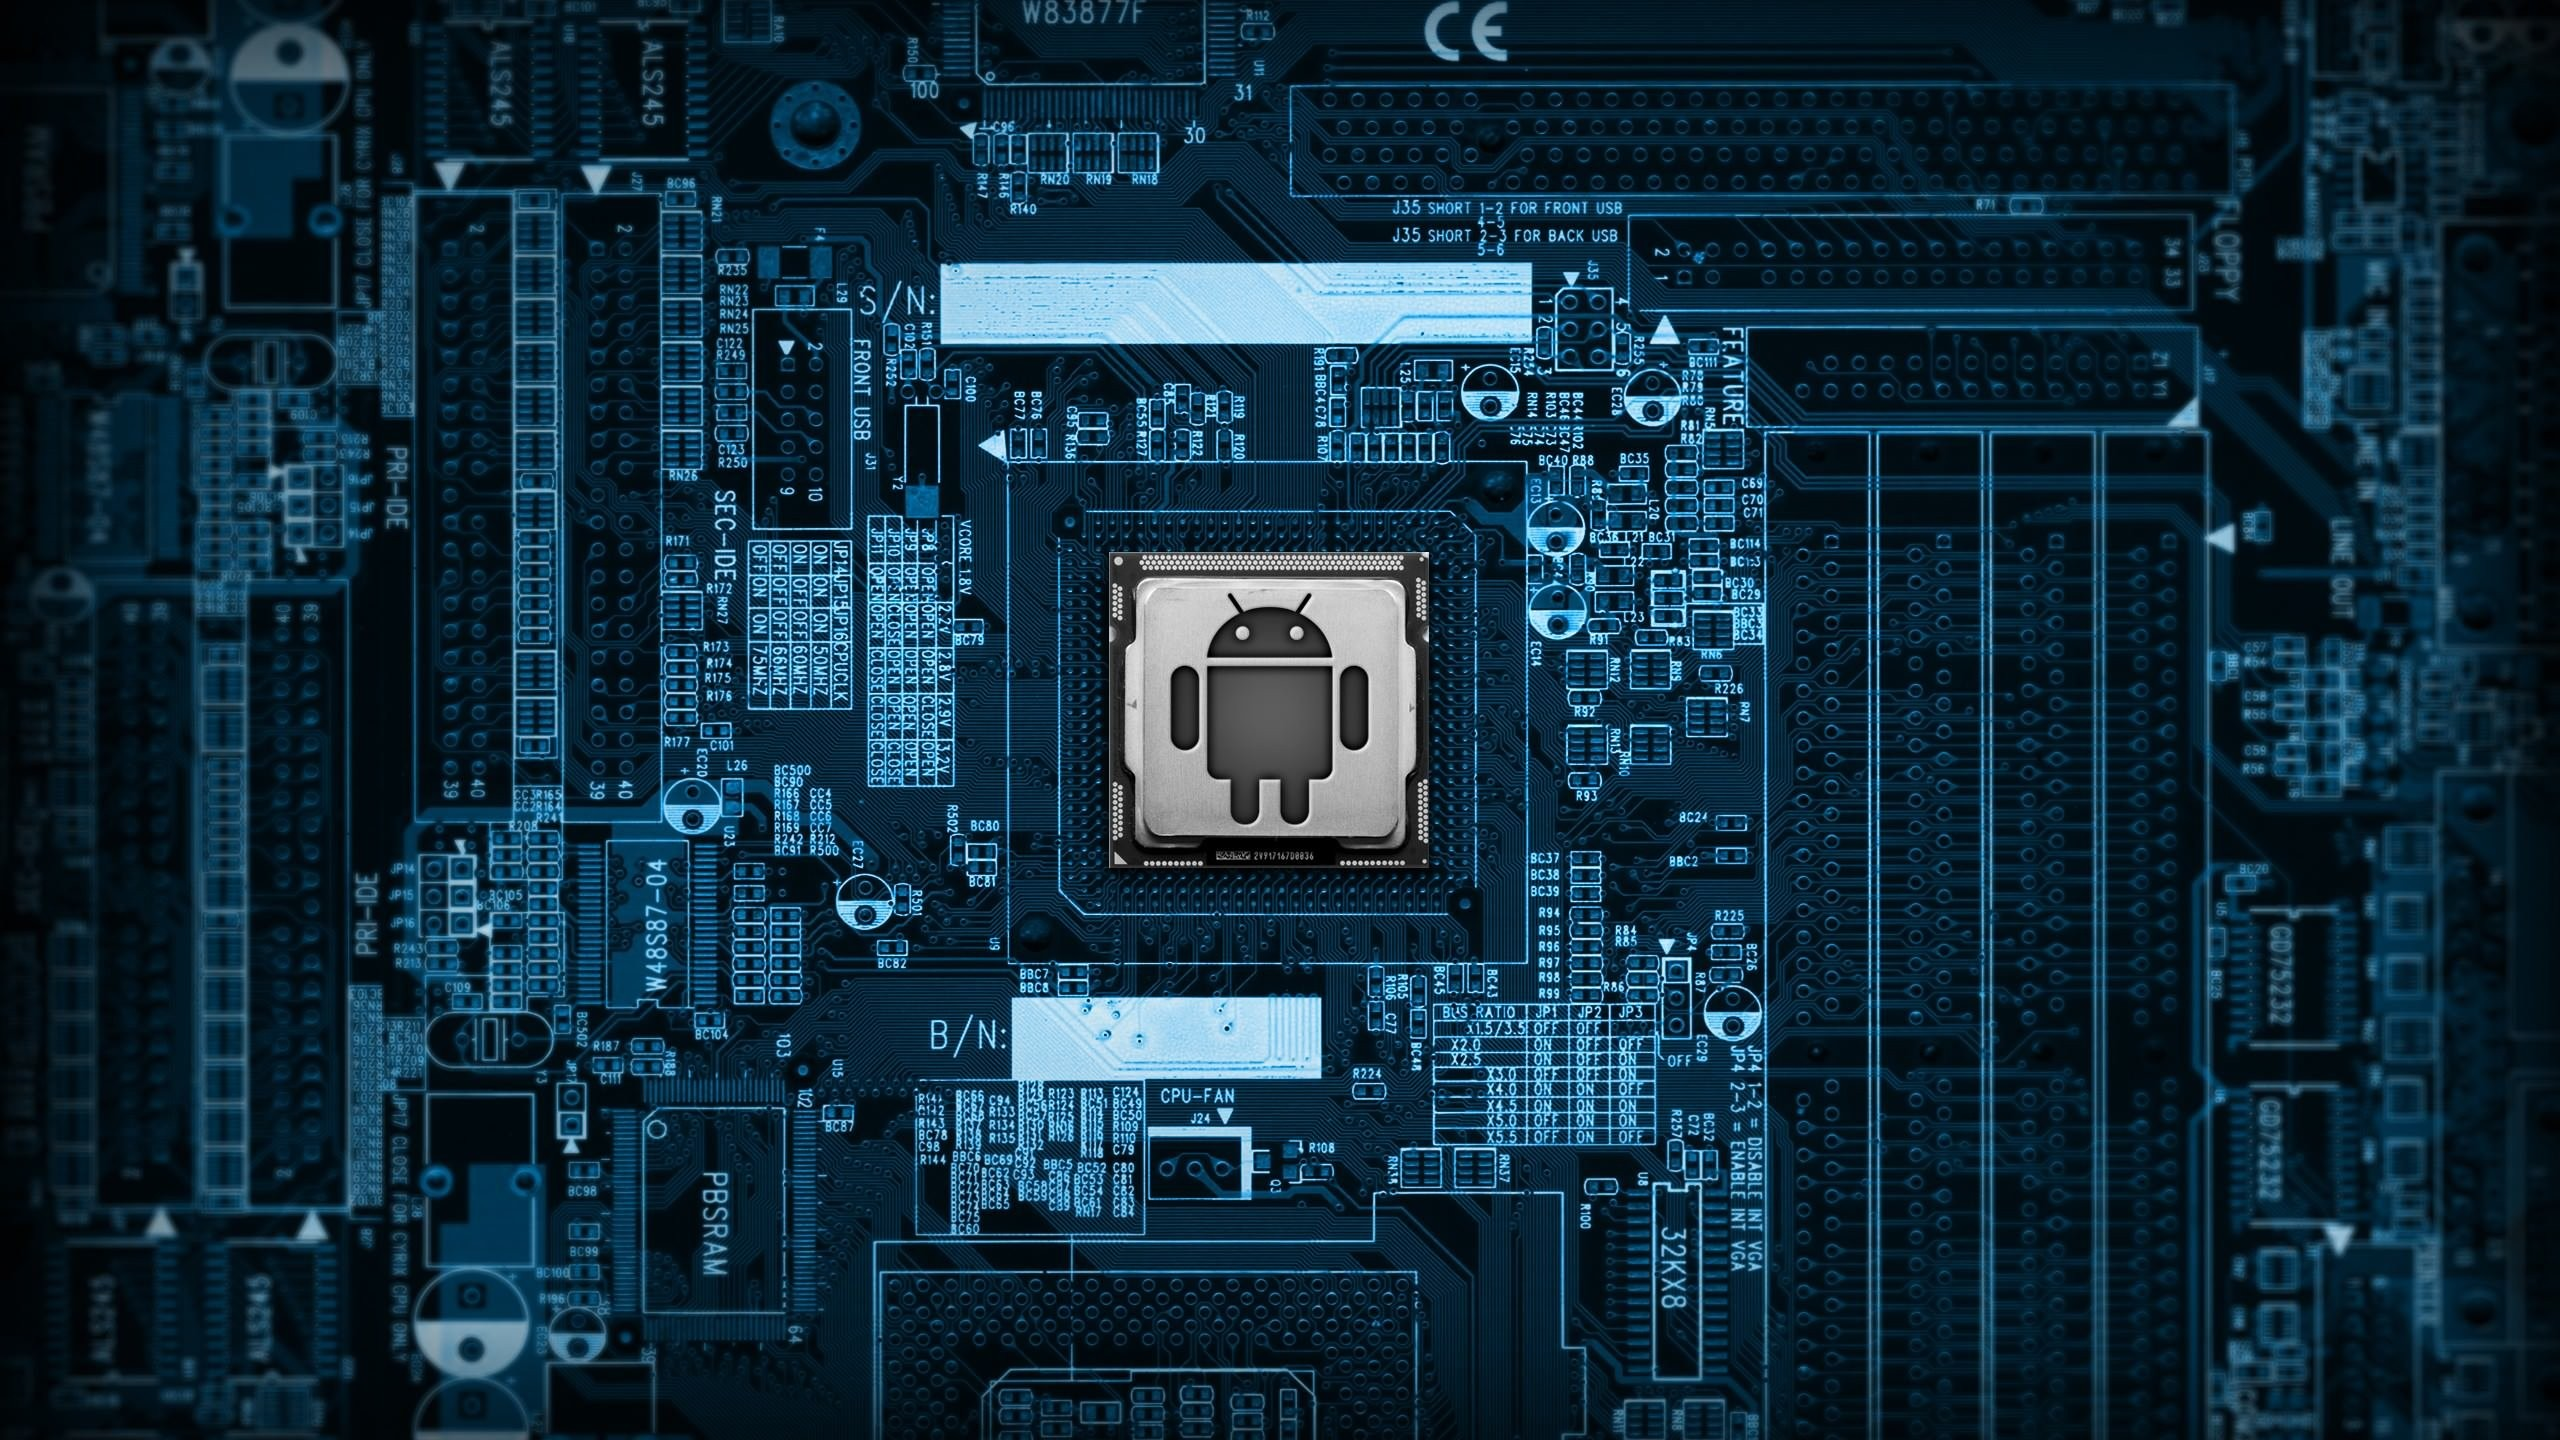 Android Logic Board Wallpaper for Desktop 2560x1440